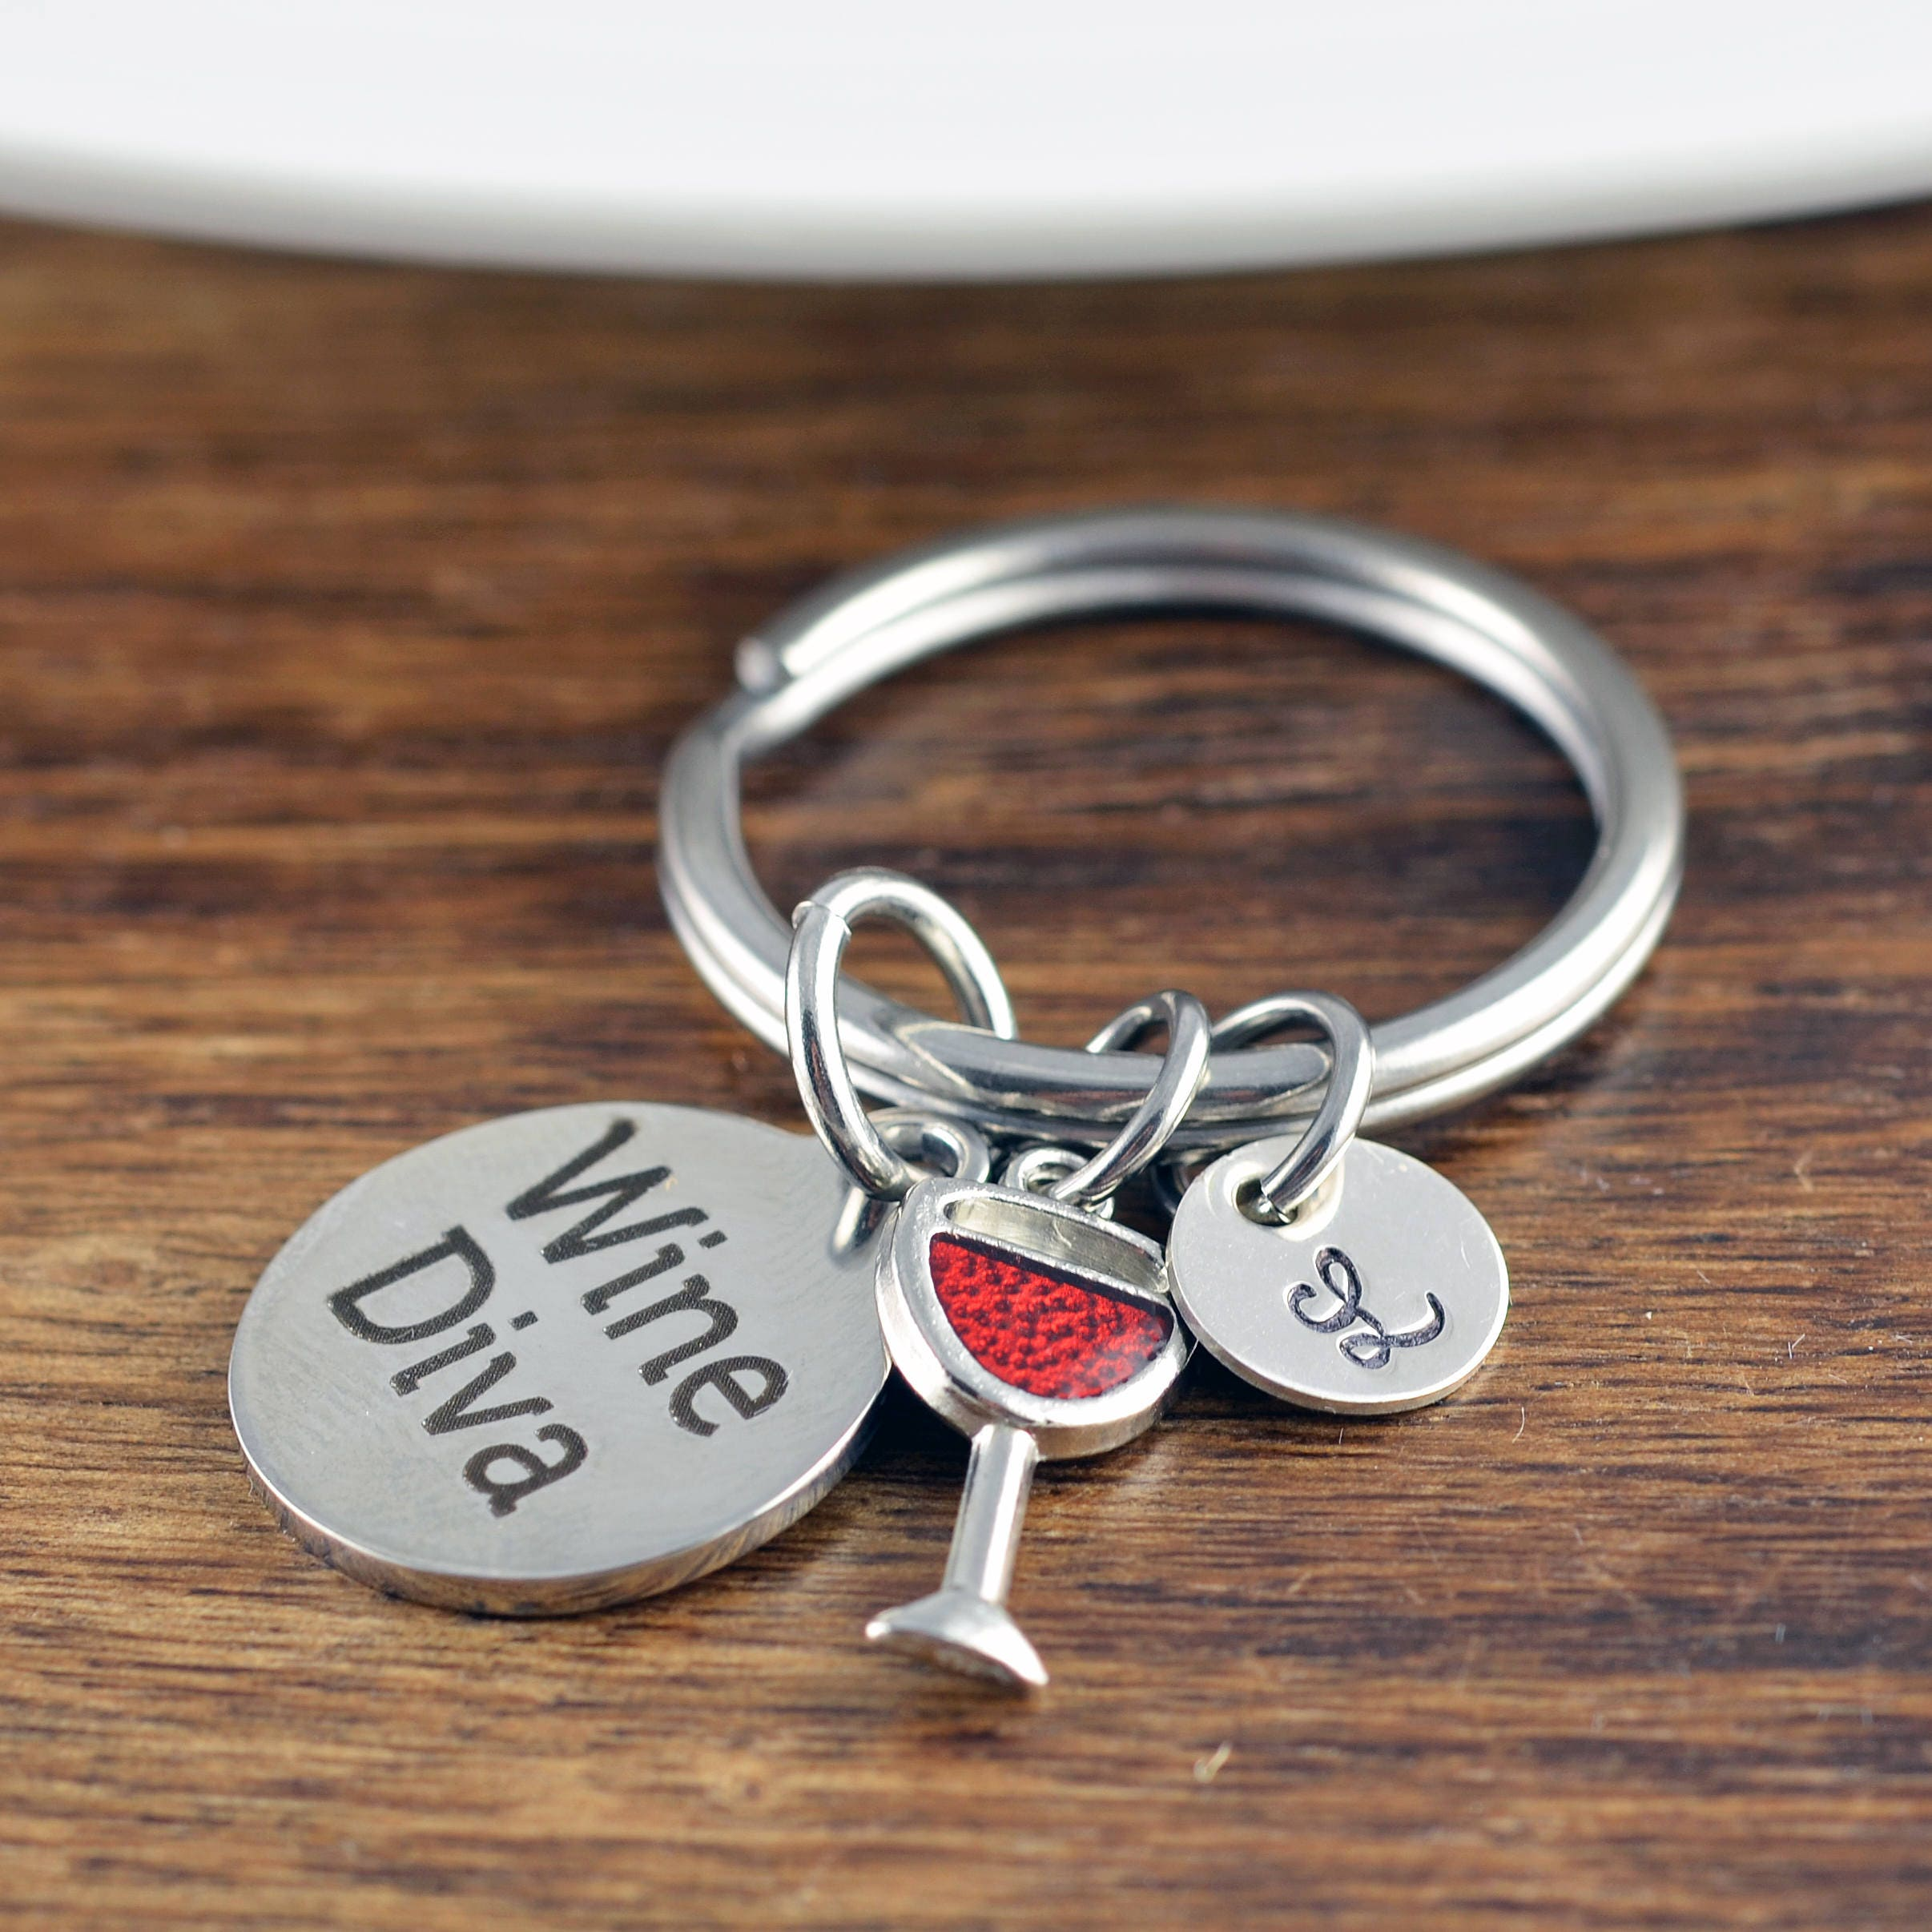 Personalized KeyChain - Wine Diva- Wine Lover Gift - Wine Lover Gifts for  Women - Gift for Her - Engraved Keychain - Initial Keychain d76f129073